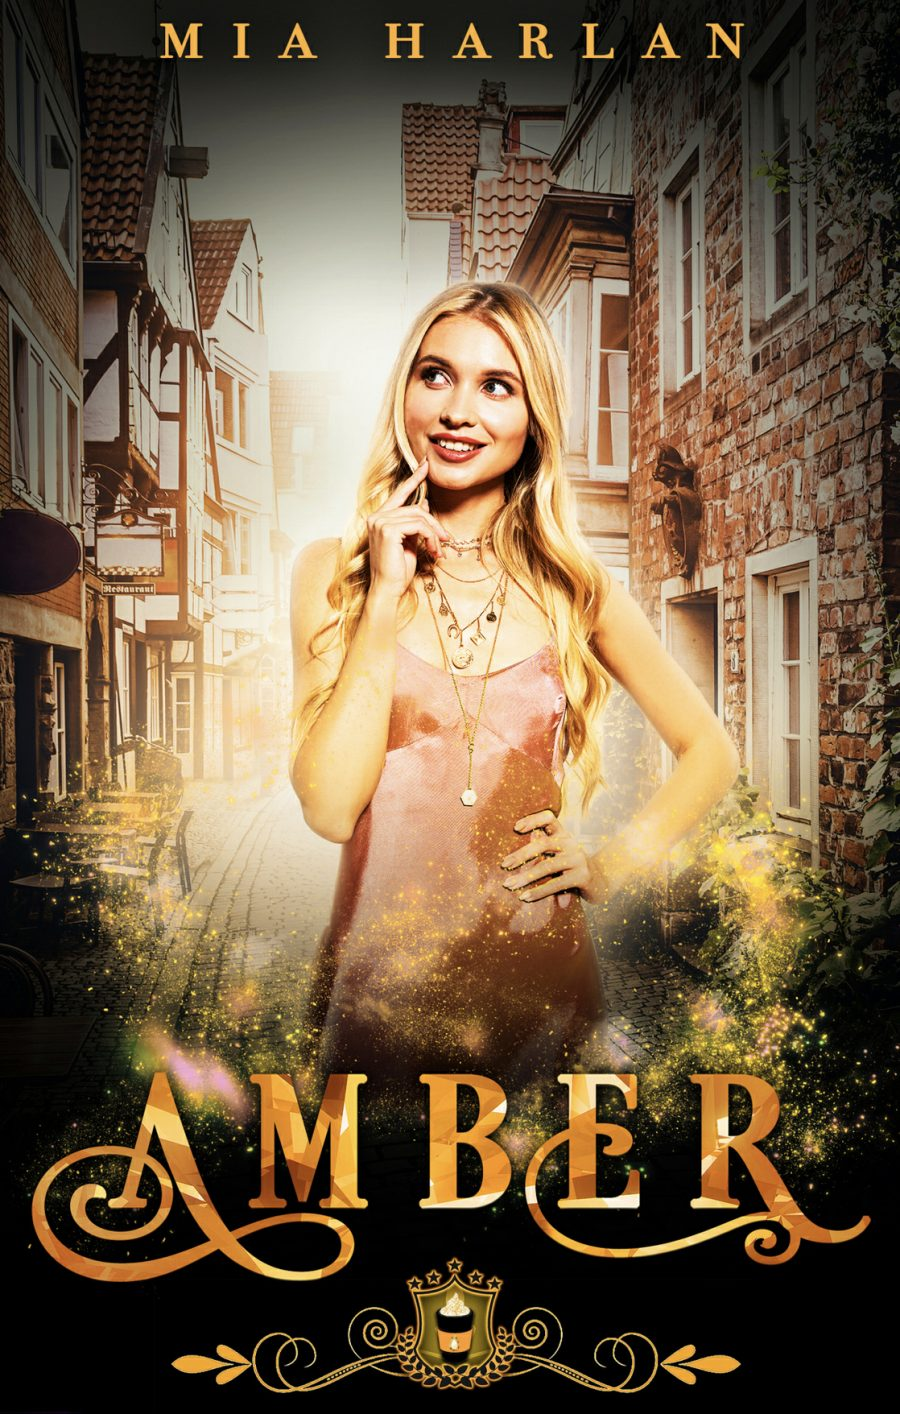 Amber (Jewels Cafe - Book 1) by Mia Harlan - A Book Review #BookReview #FastBurn #RH #ReverseHarem #HEA #StandAlone #PNR #KindleUnlimited #KU